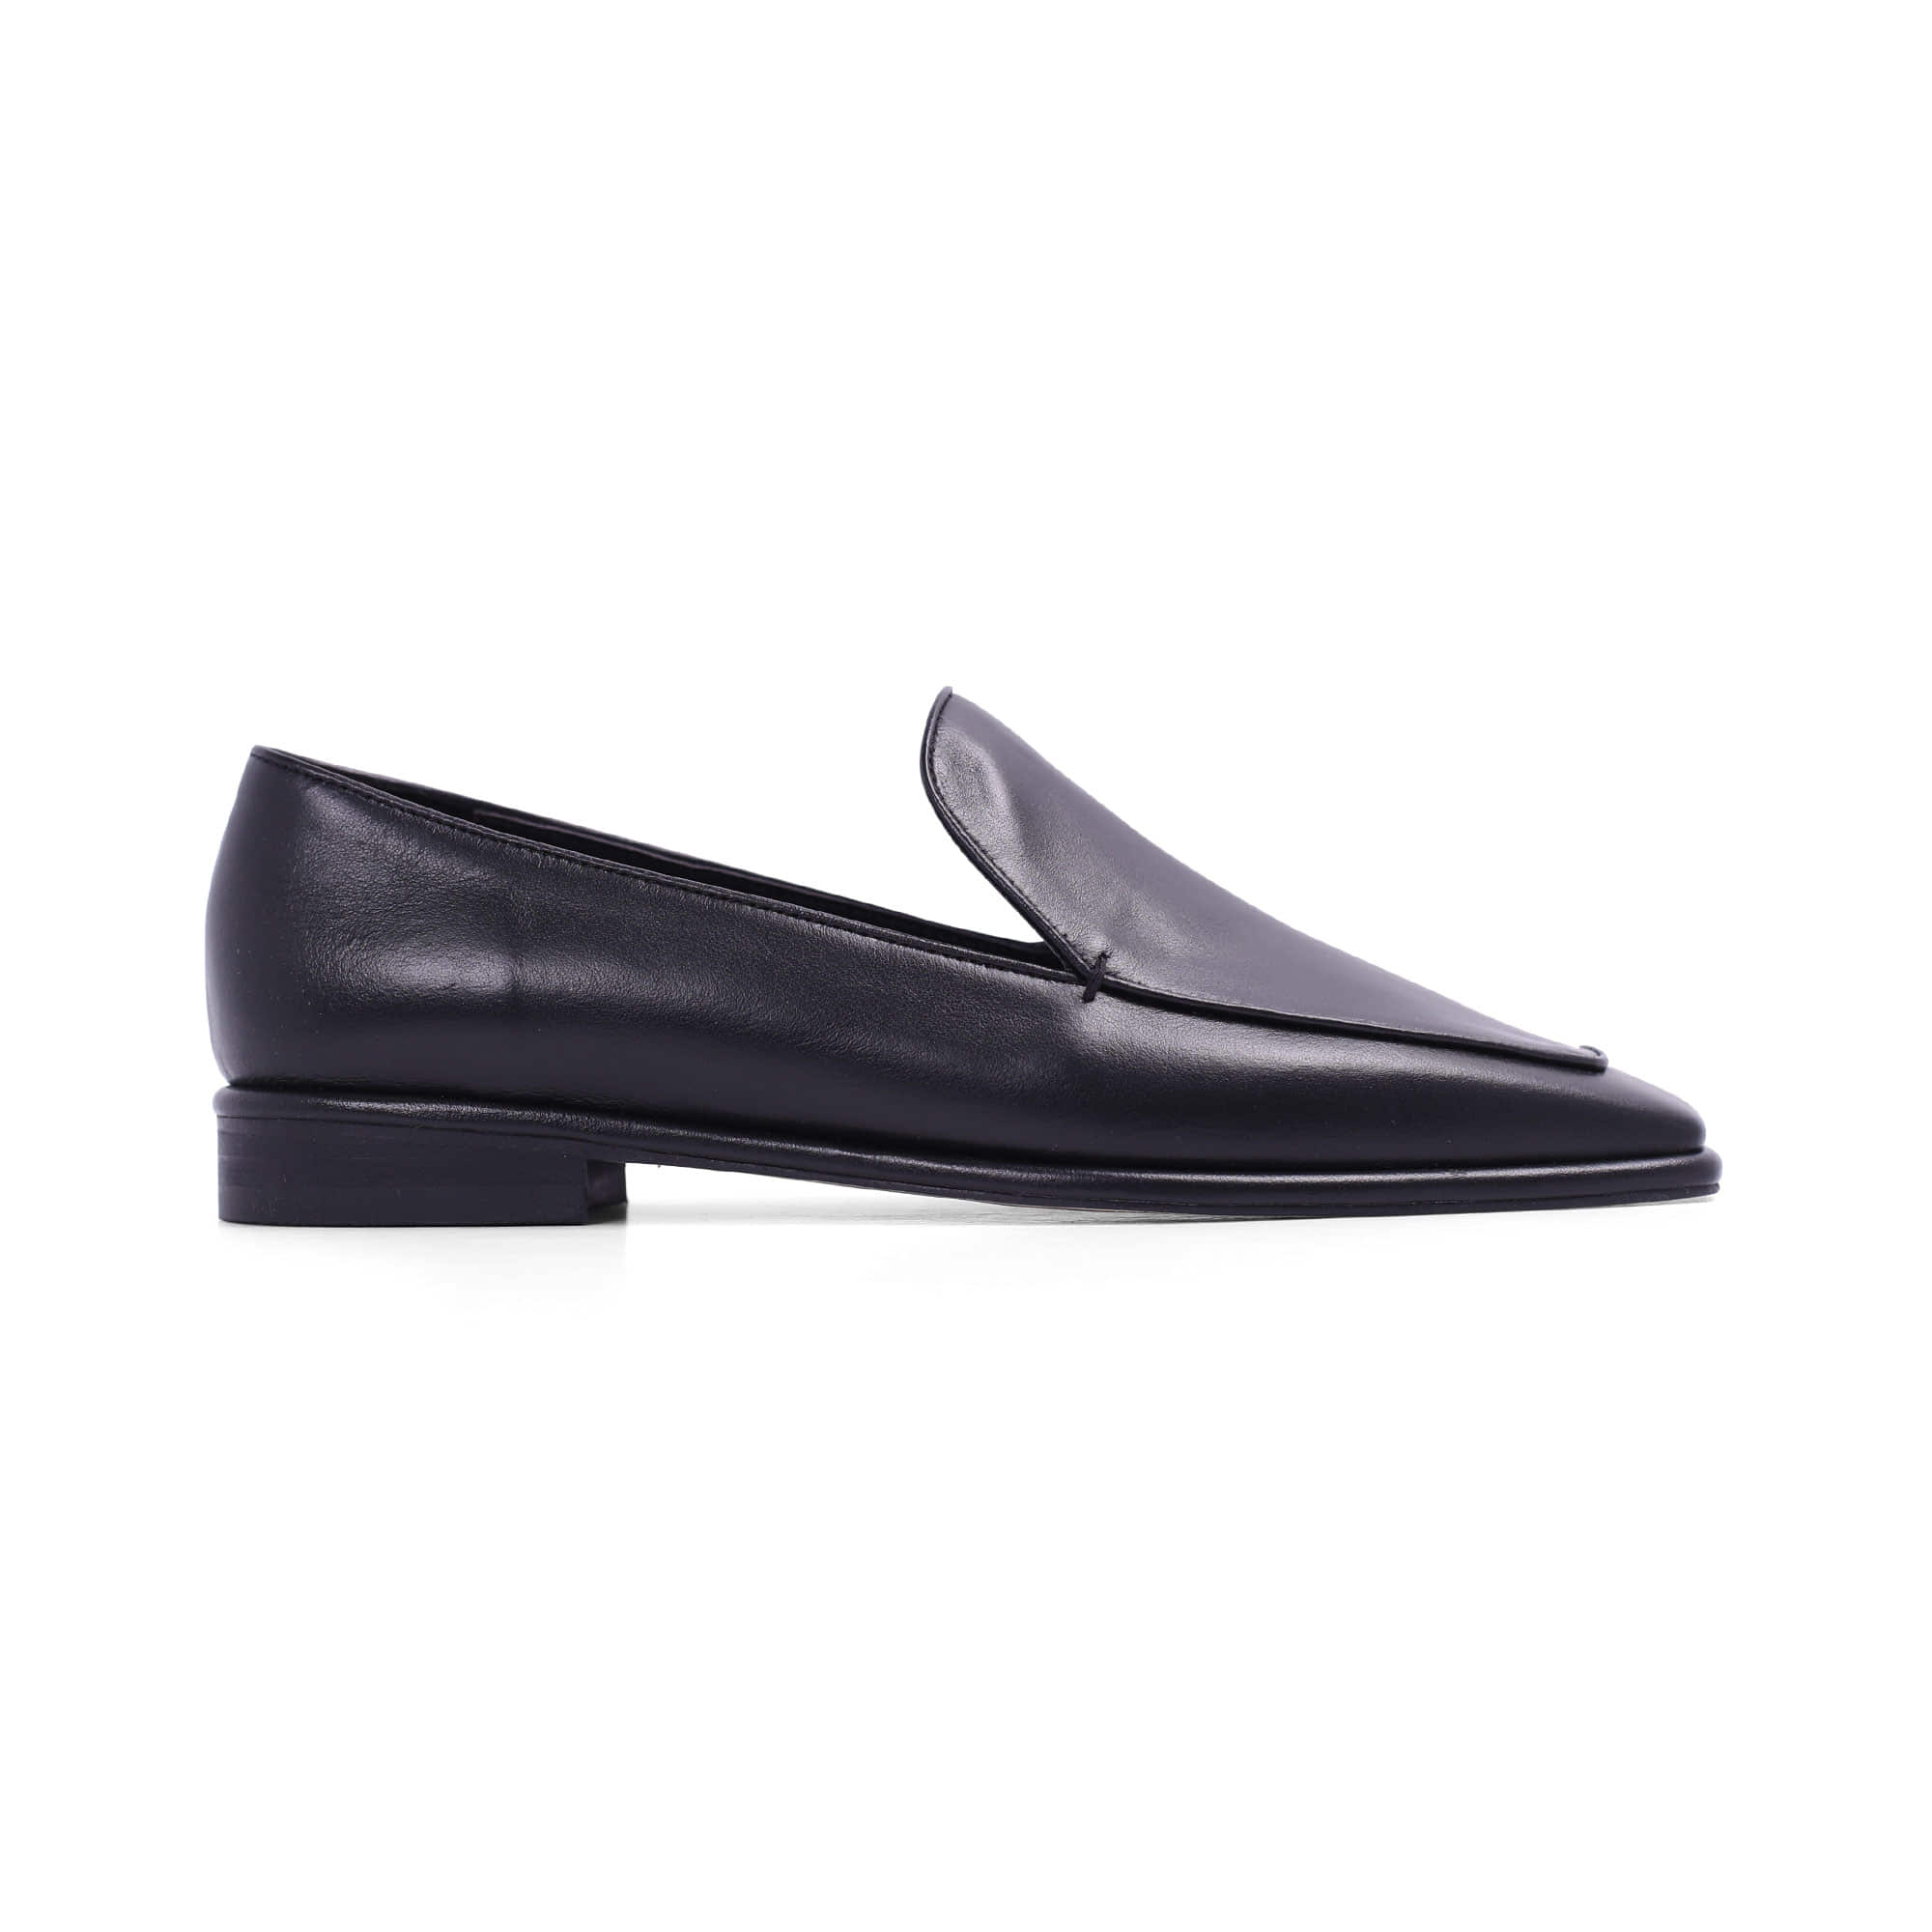 Unbaline loafers (BL)